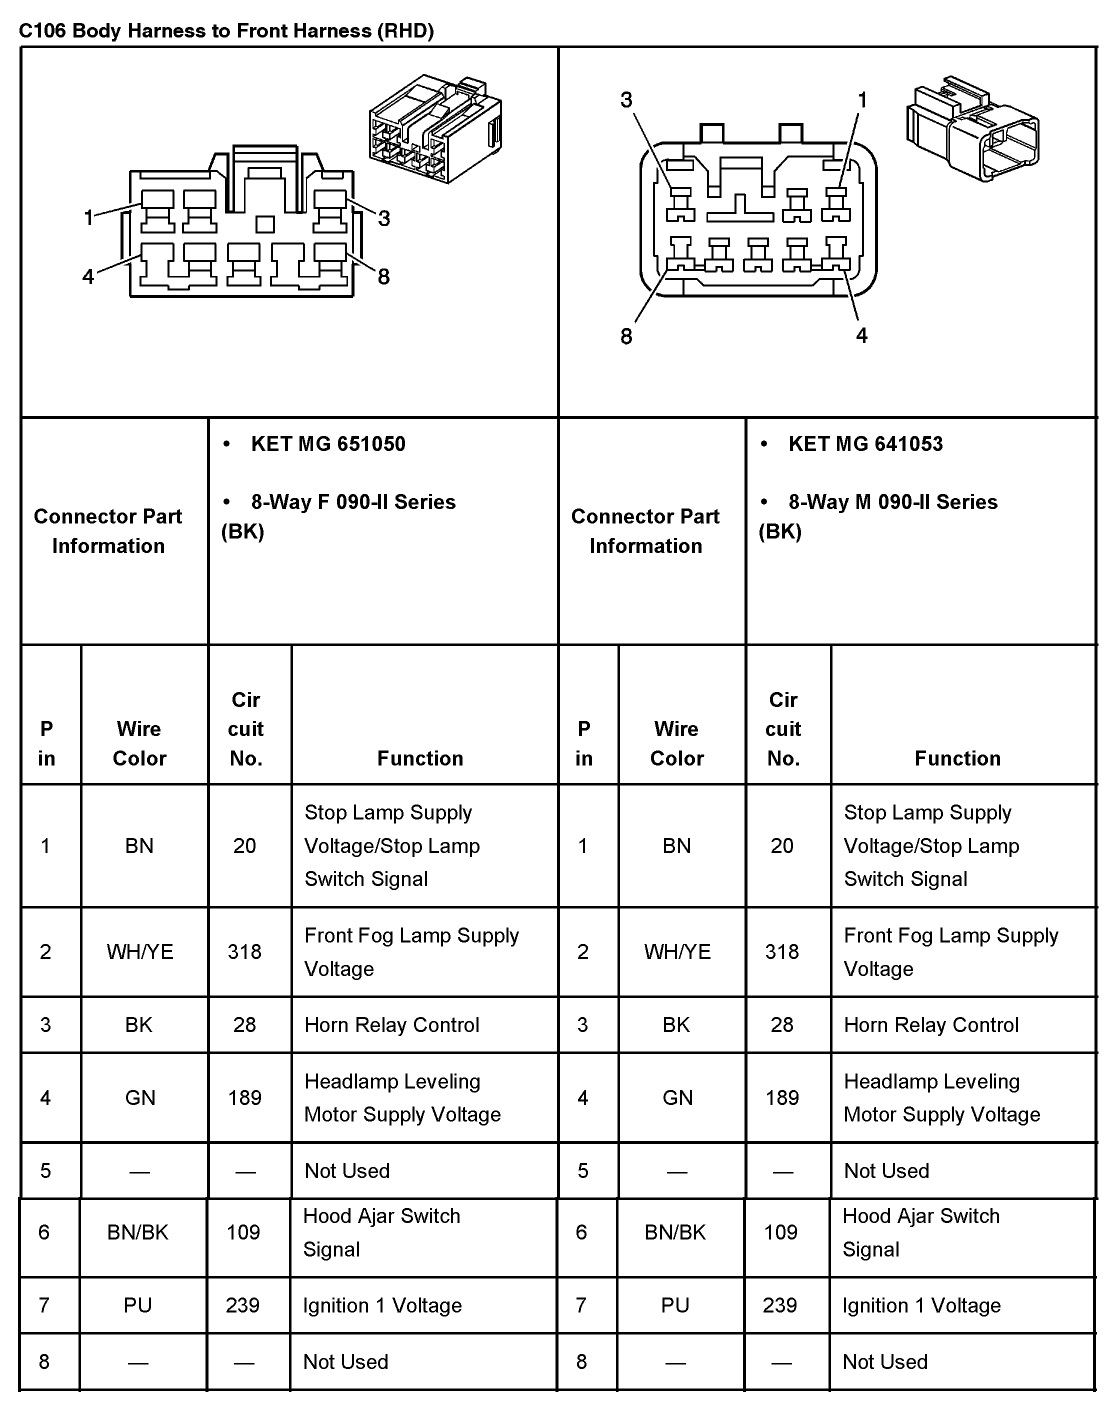 7331d1383704576 2005 aveo master connector list diagrams conn3 jpg 2005 silverado speaker wiring diagram free download wiring 2007 chevy aveo stereo wiring diagram at alyssarenee.co